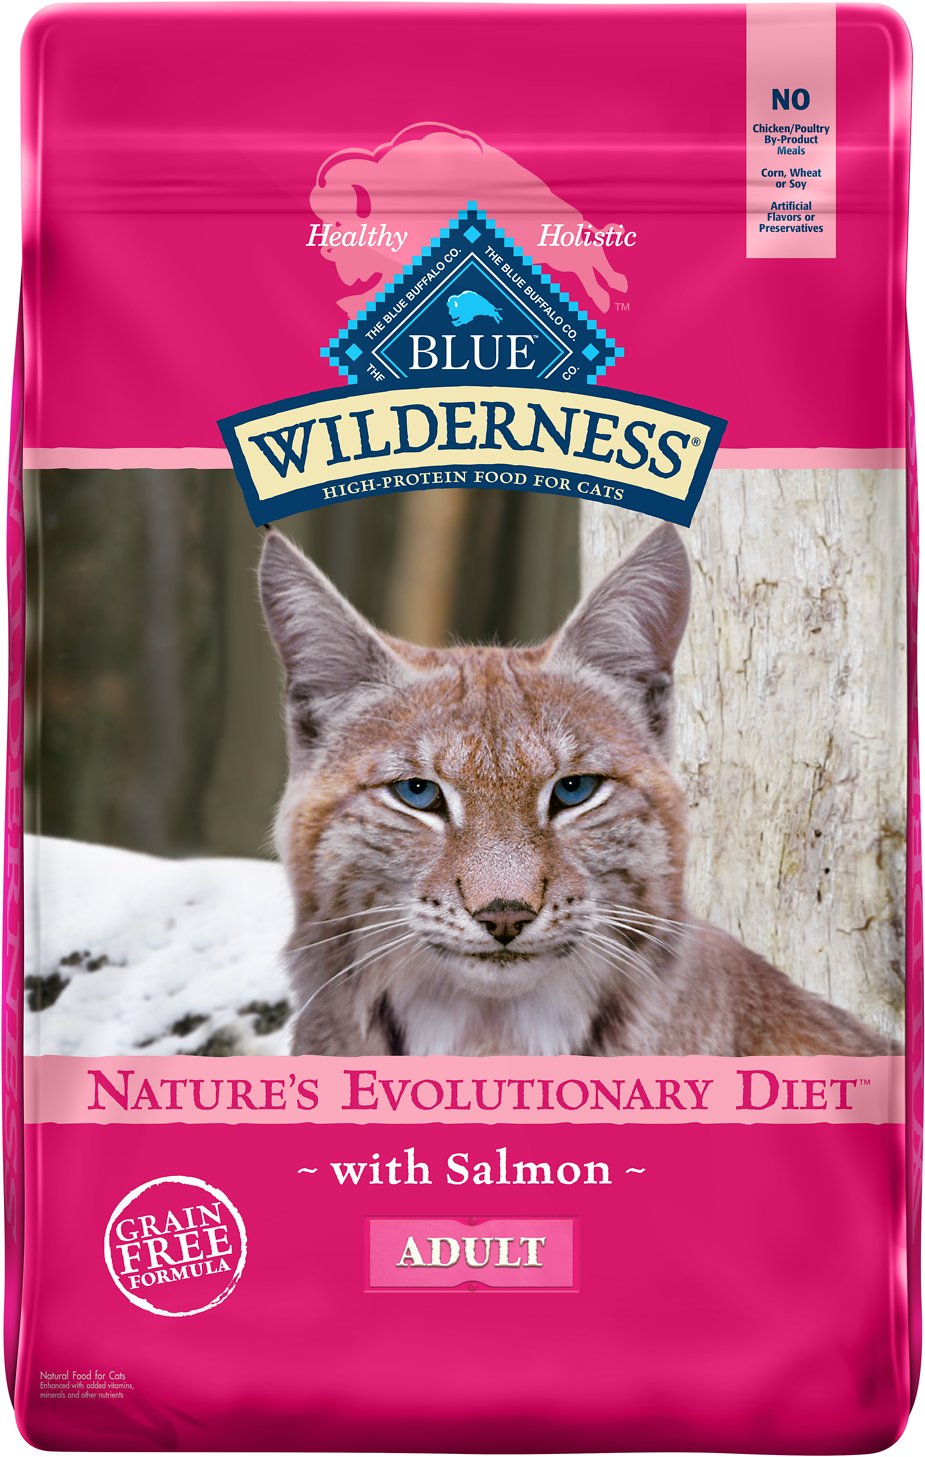 Blue Grain Free Cat Food Reviews